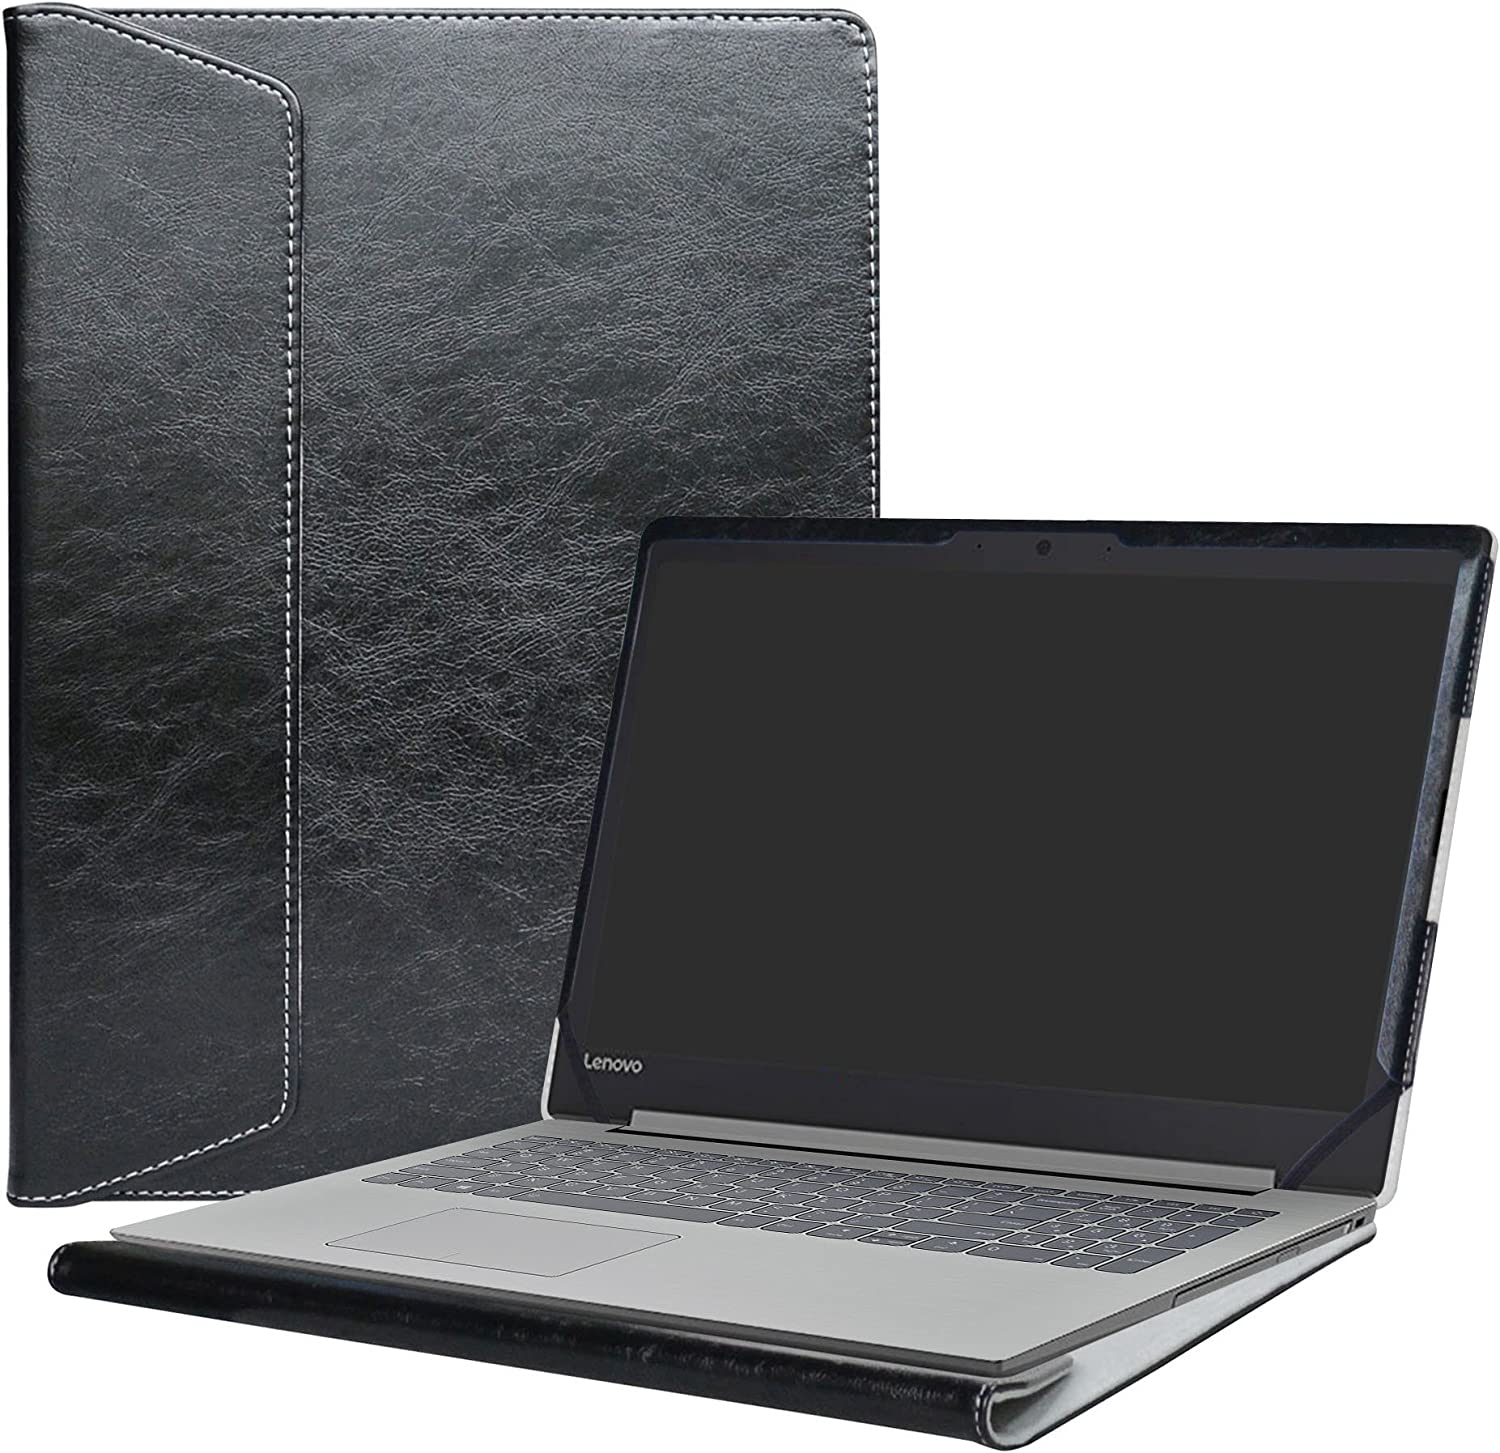 "Alapmk Protective Case for 15.6"" Lenovo Ideapad 320s 15 320s-15ikb/ideapad S145 15 S145-15IWL S145-14AST S145-14IGM Series Laptop [Note:Not fit Ideapad 320 15.6/Ideapad 530s 15.6 inch],Black"